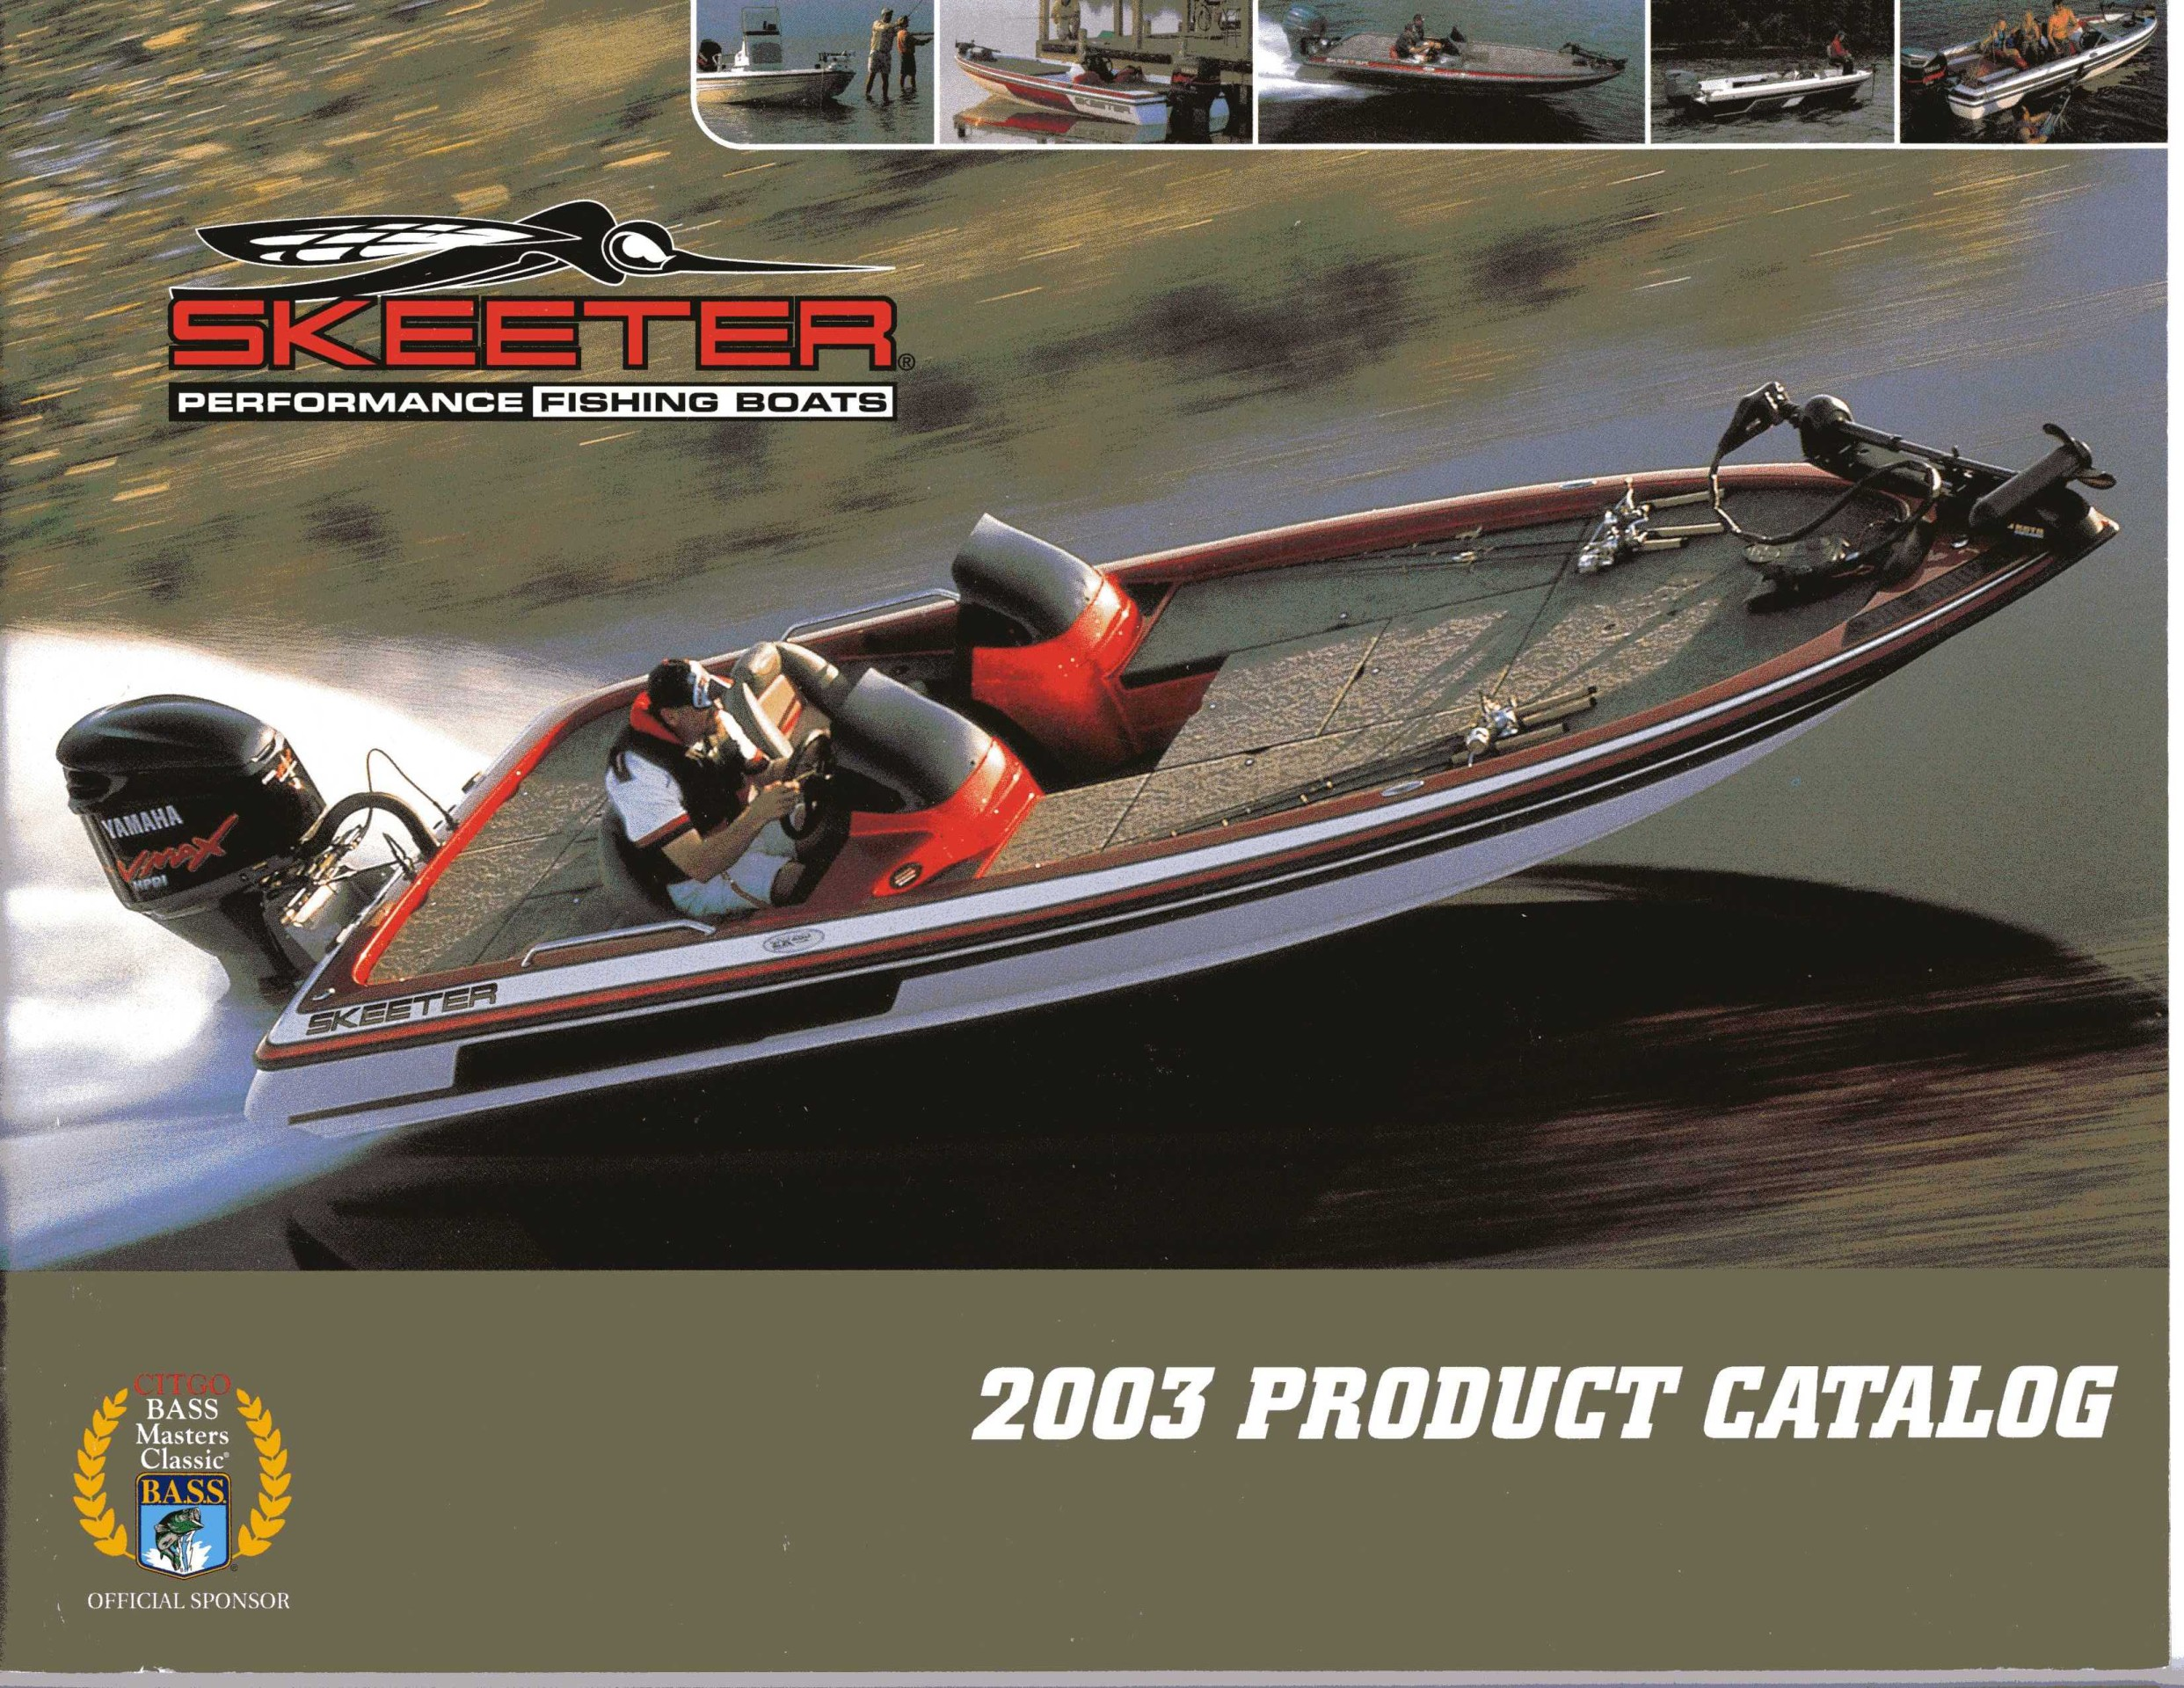 Skeeter B Boat Replacement Parts Motor Repalcement Parts And Diagram